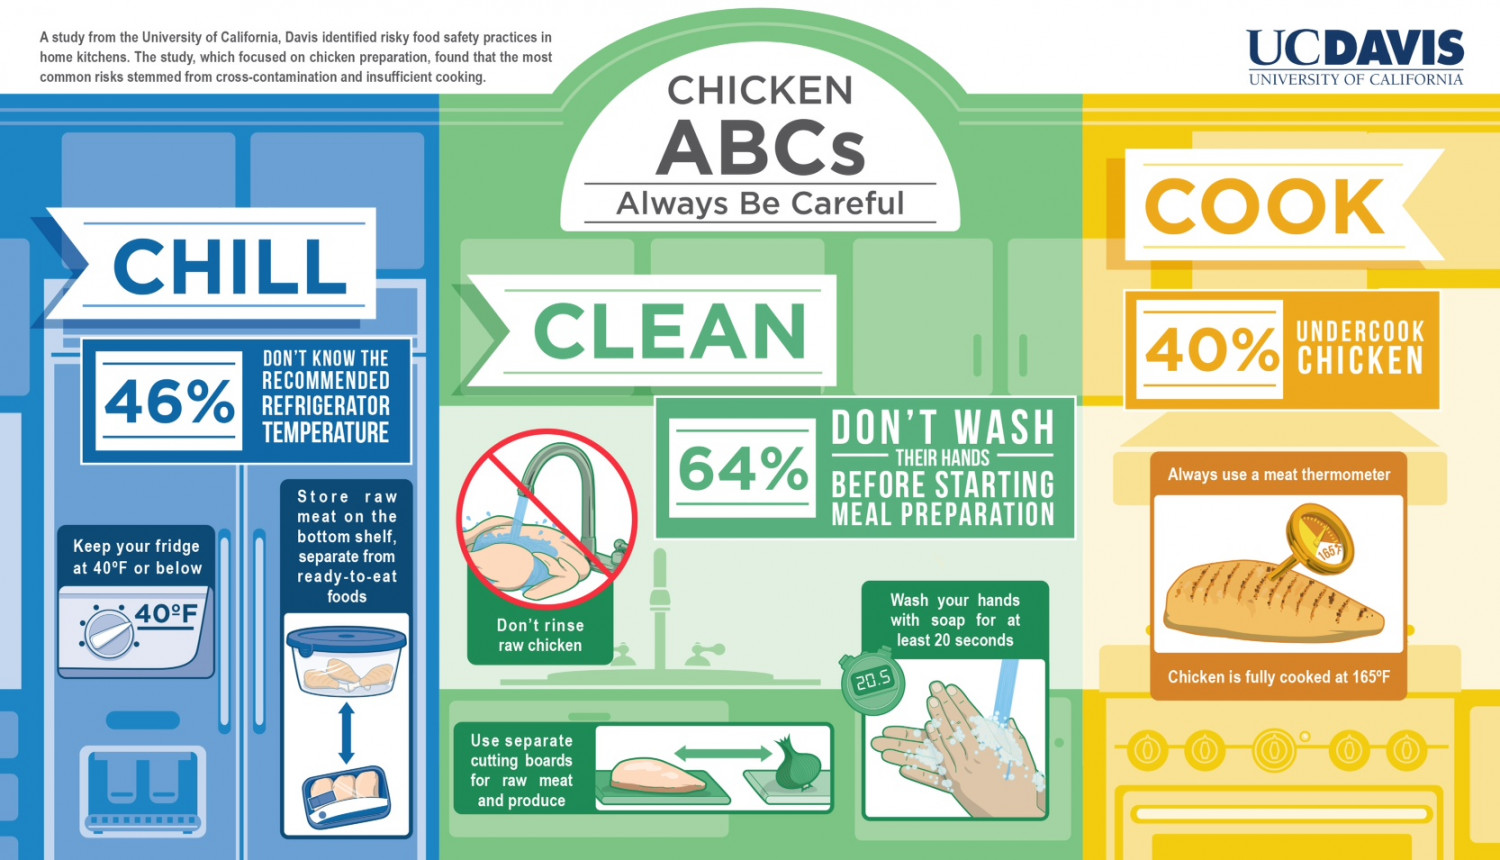 Chicken ABCs: Risky Food Safety Practices by Consumers - A Study by University of California, Davis Infographic